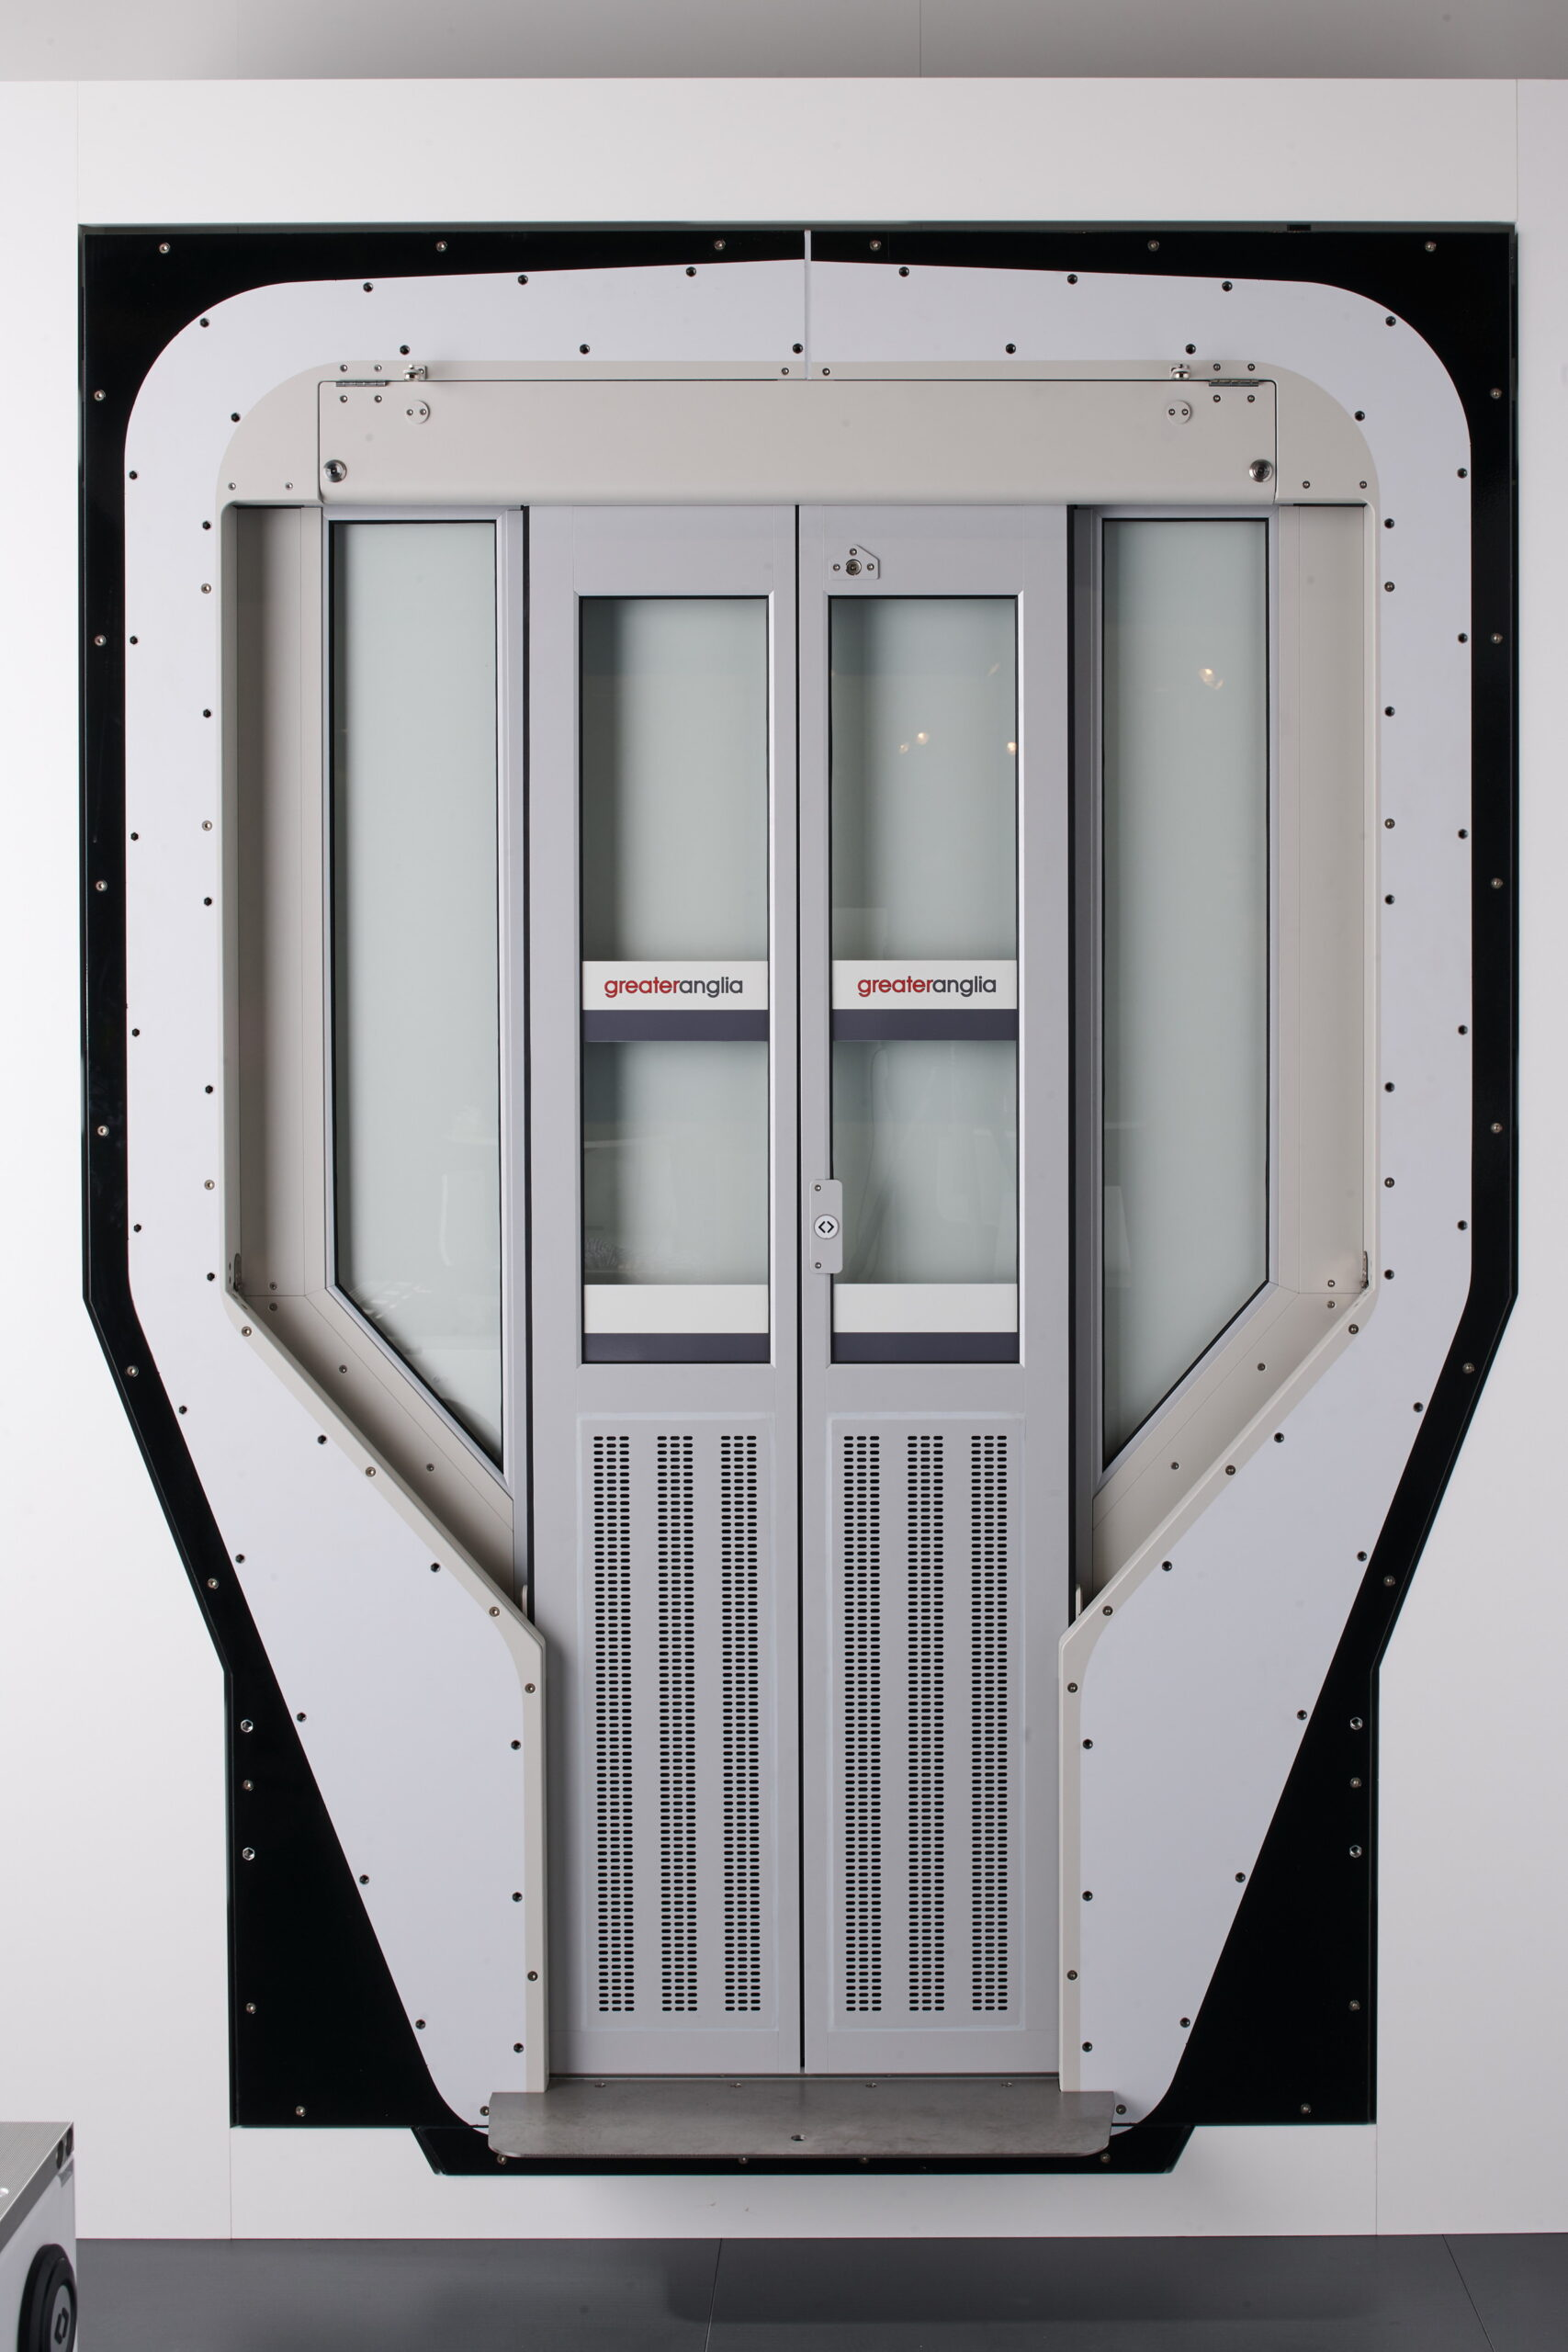 Integrated Partition Door System in a Cassette Application